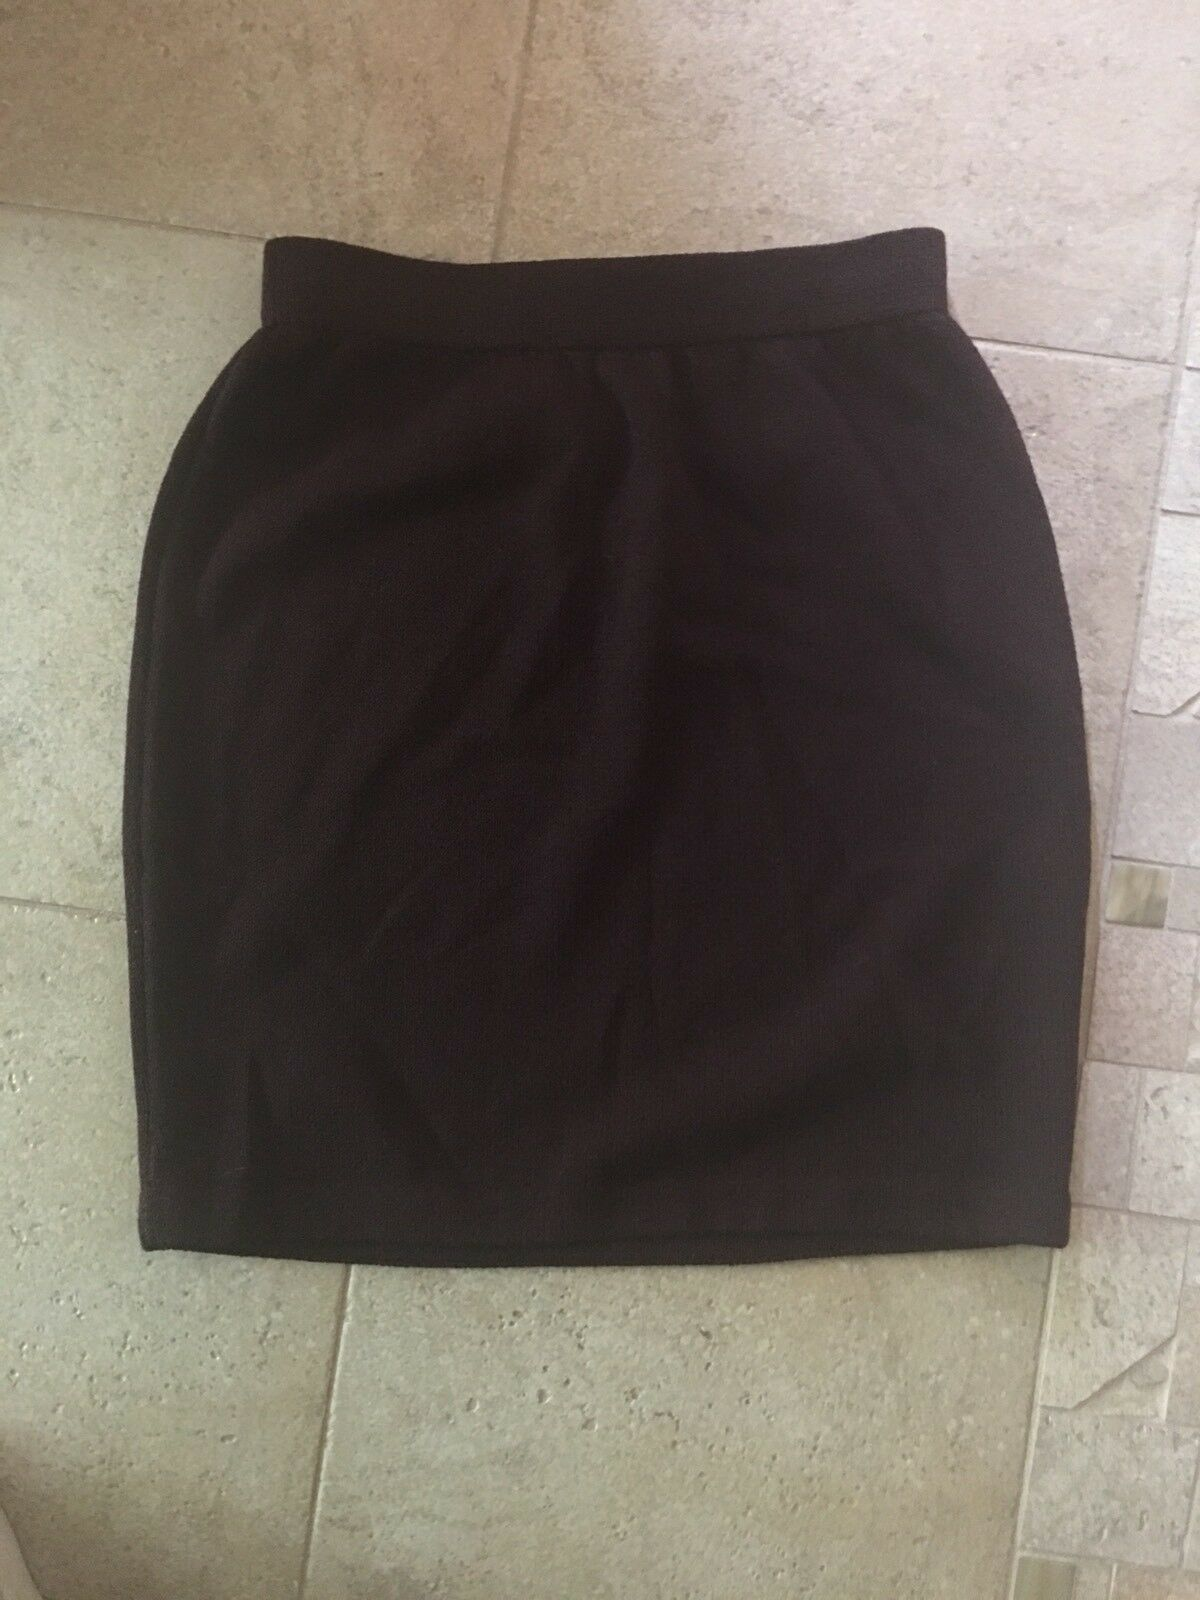 St. John Vintage Skirt Size 2 Knit Pencil Mini ISkirt Burgundy Wine color